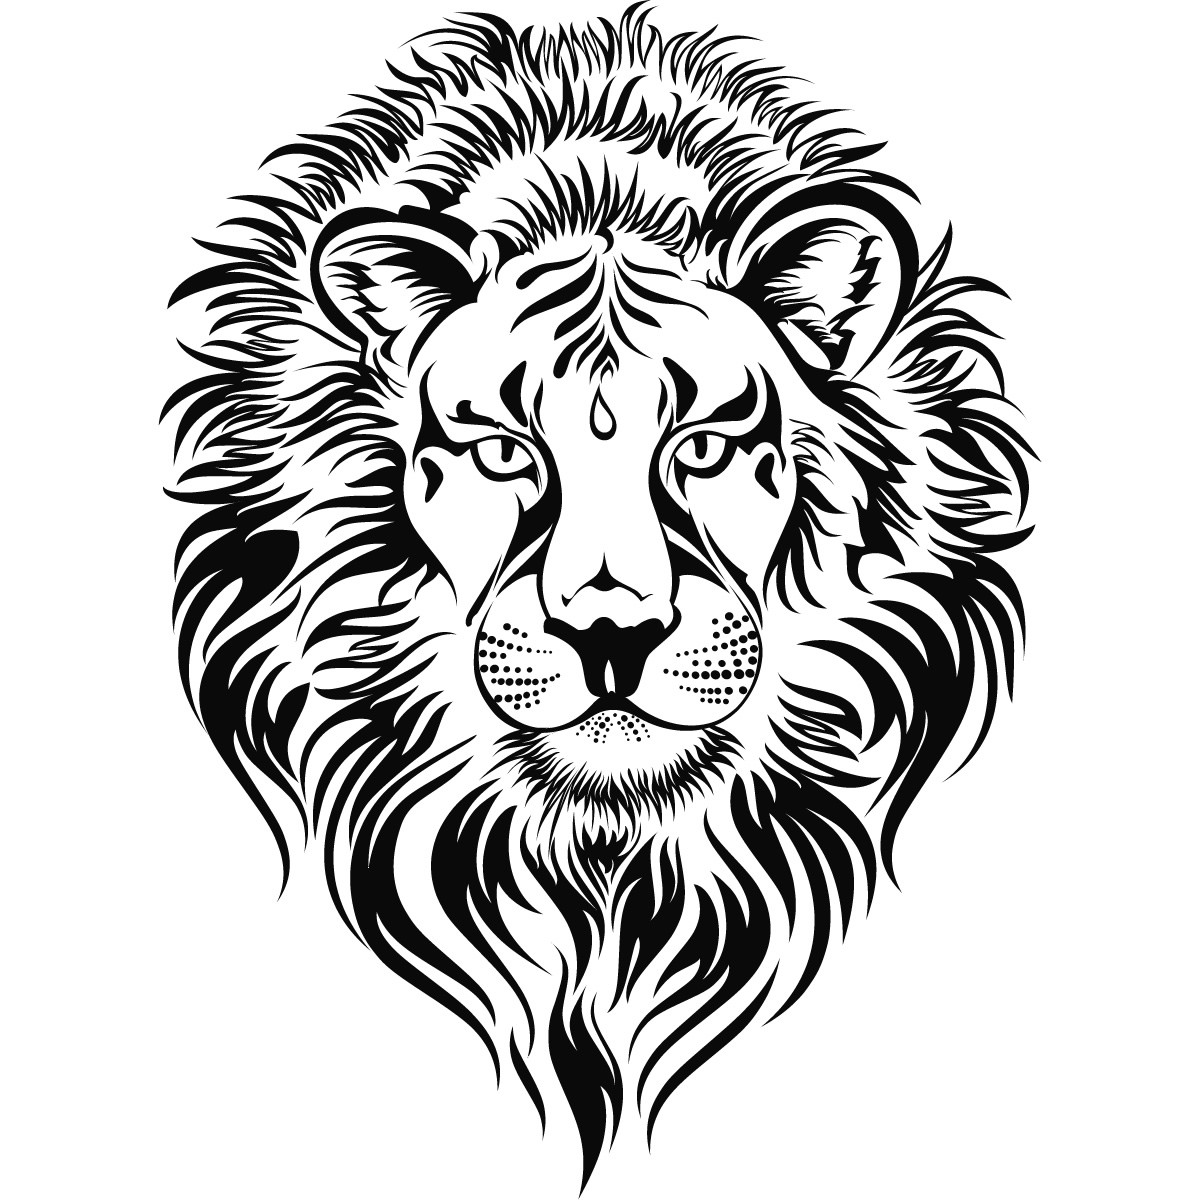 Lion Face Line Drawing at GetDrawings.com.